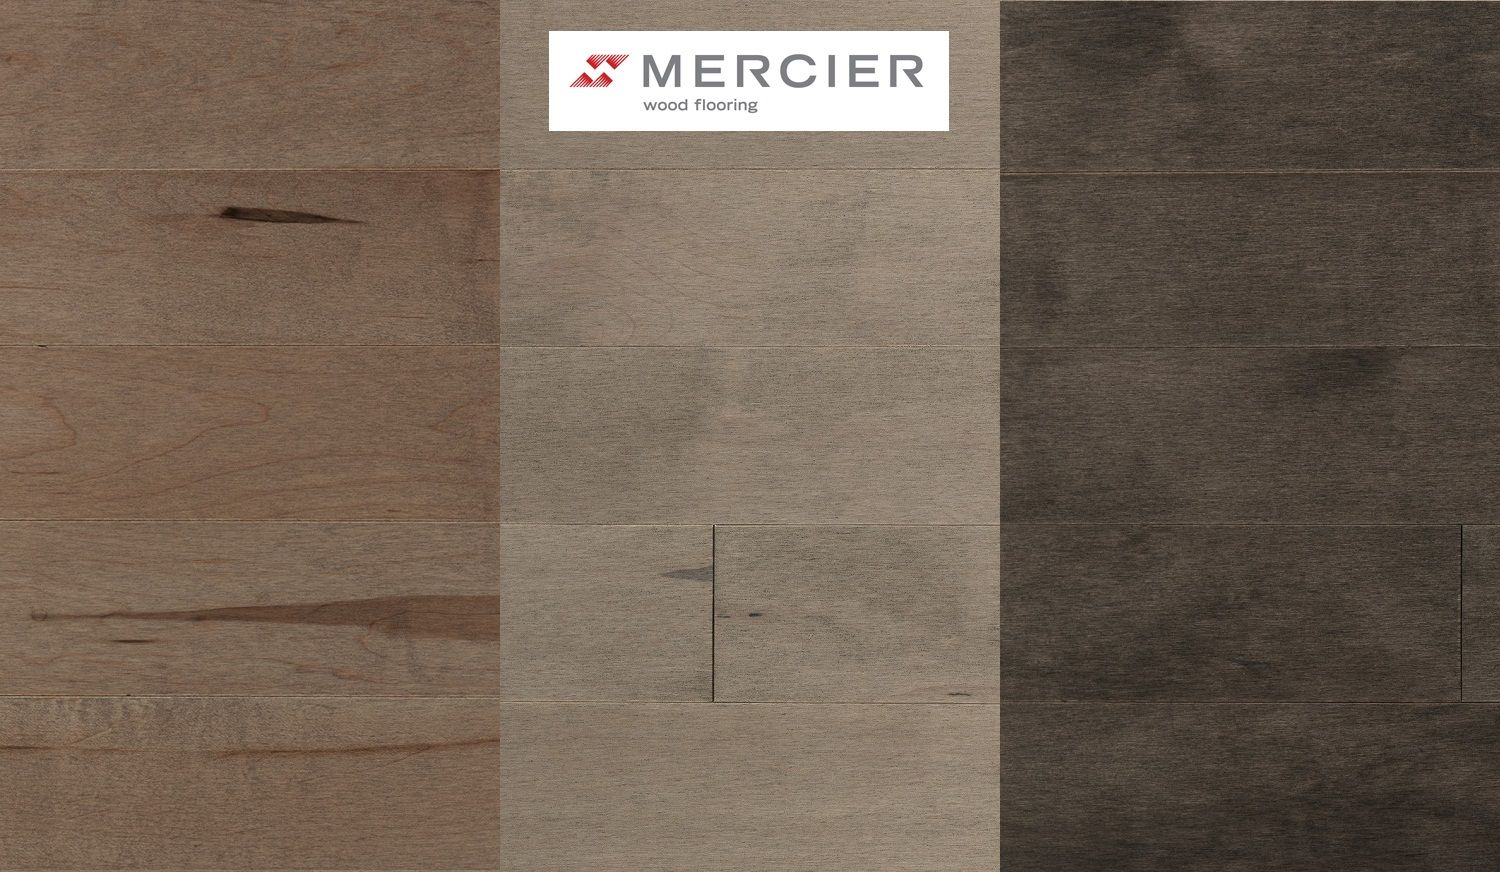 Mercier Wood Flooring - Hard Maple - Kalahari, Shadow and Stone - Mercier Wood Flooring - Hard Maple - Kalahari, Shadow And Stone